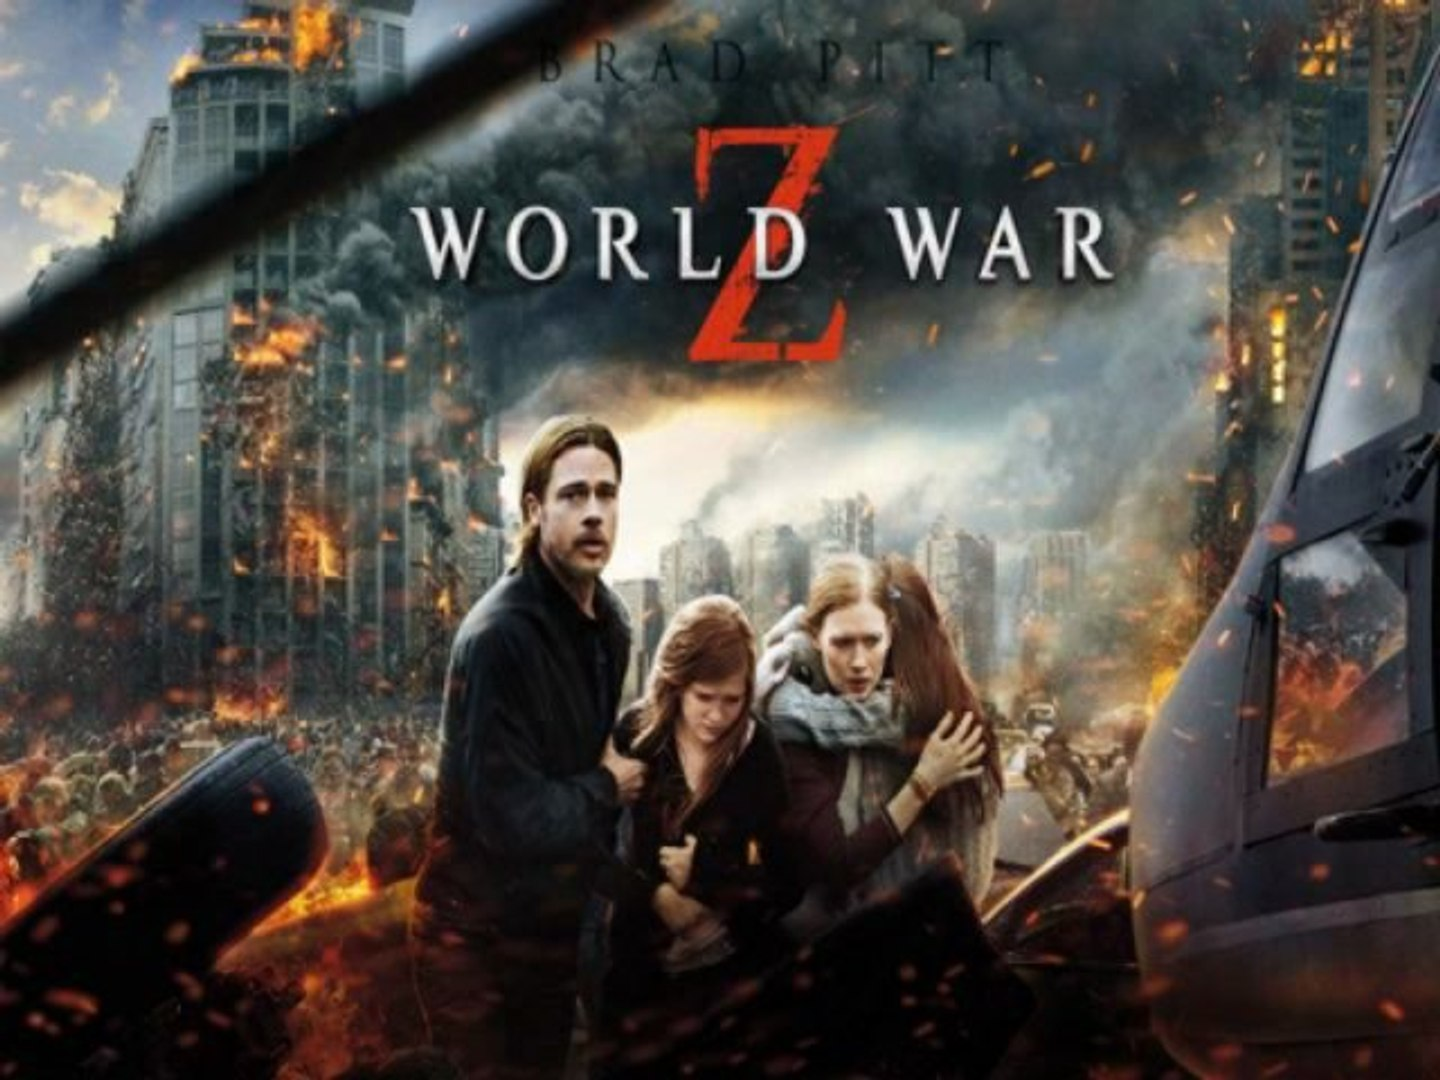 Complete Movie ONLINE World War Z  ++ FREE Movie++ with High Definition 720p [streaming movie to tv]